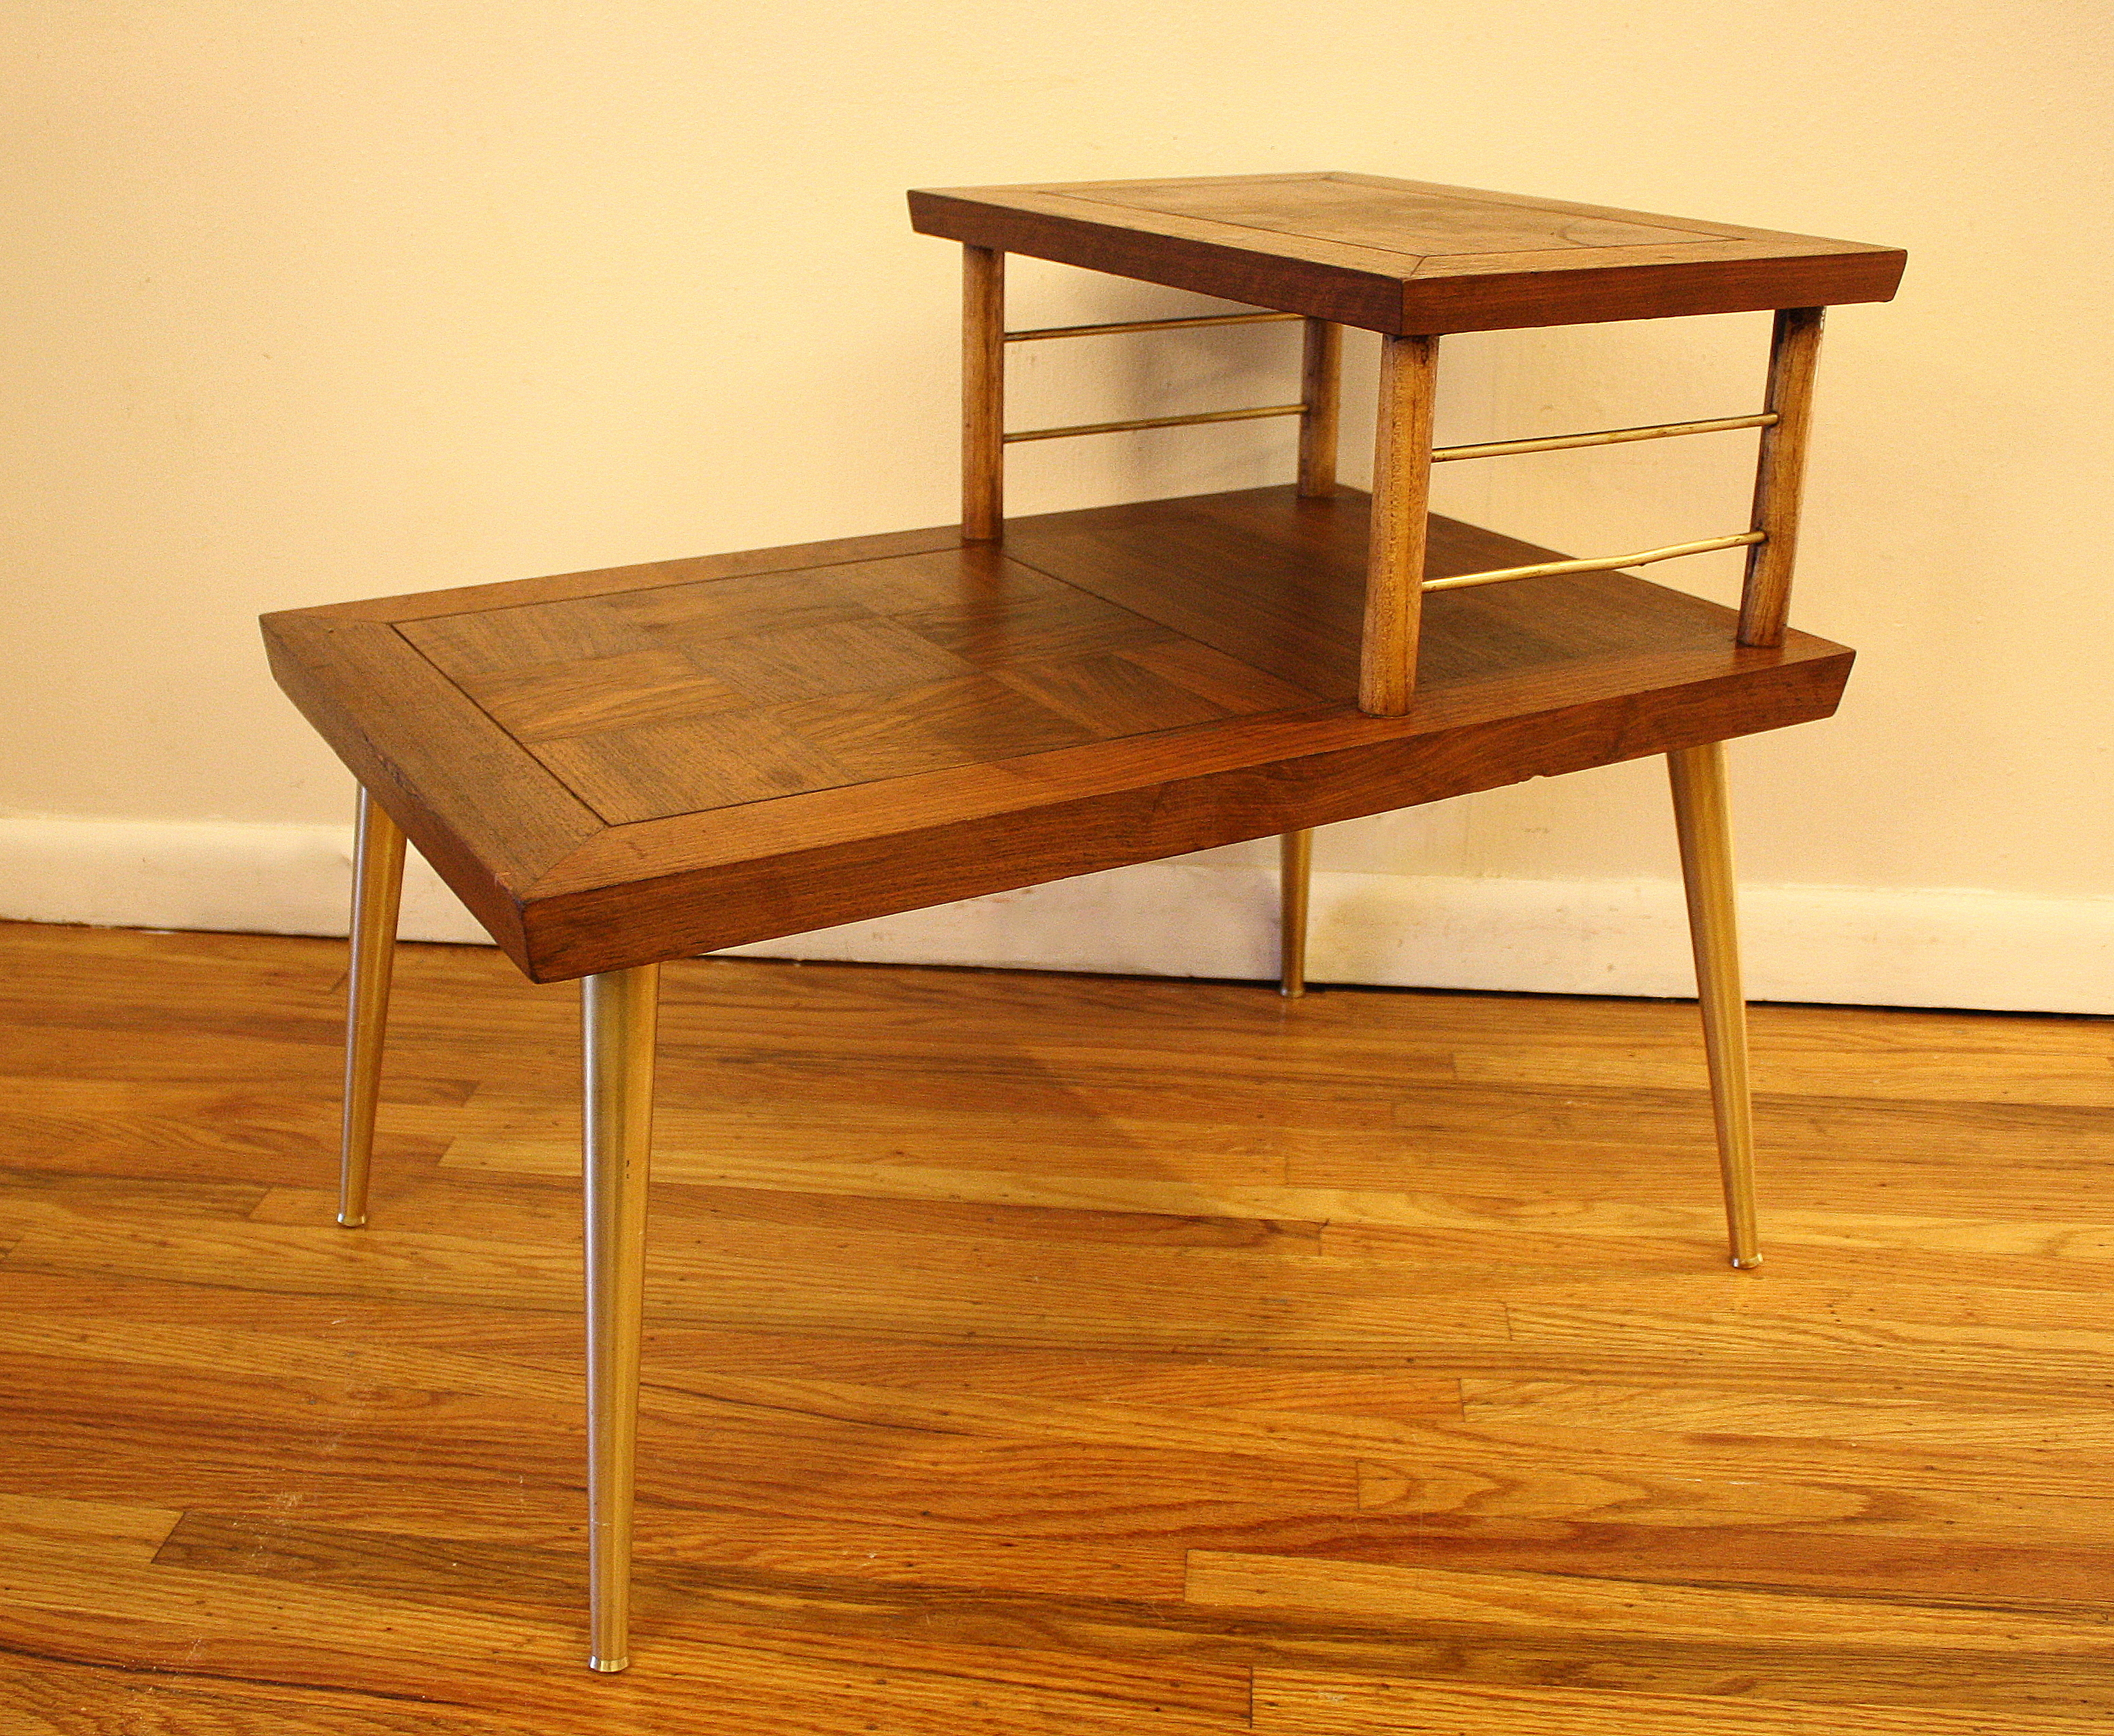 owings side table with drawer espresso threshold target tures mcm parquet two tiered accent ked vintage tables hobby lobby lamps patio bench wood and mirror coffee skinny console